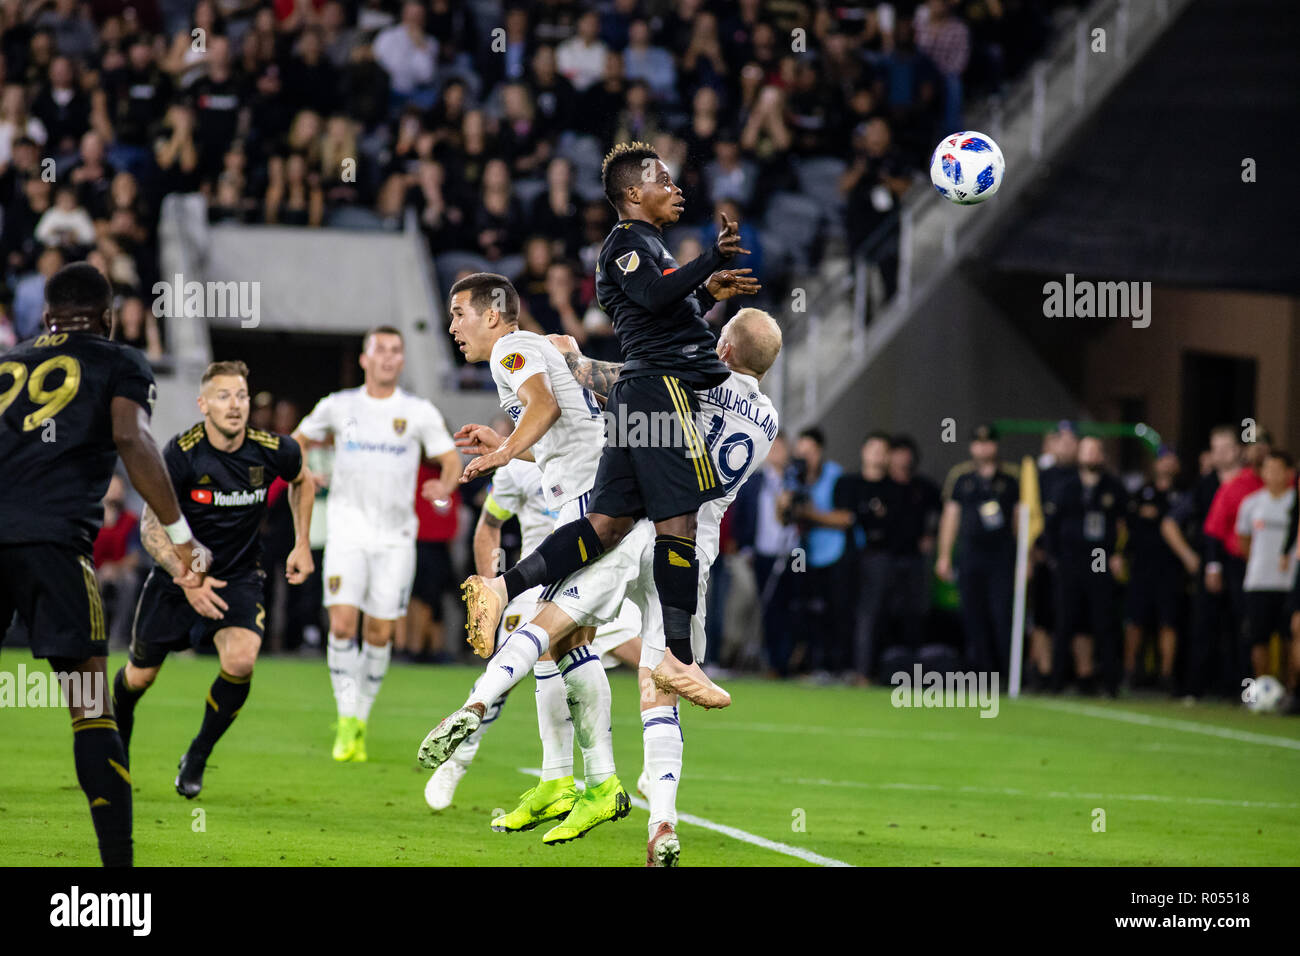 Los Angeles, USA. 1st November 2018. Latif Blessing (7) of LAFC heads the ball just wide in the first half against RSL in the MLS playoffs. Credit: Ben Nichols/Alamy Live News - Stock Image